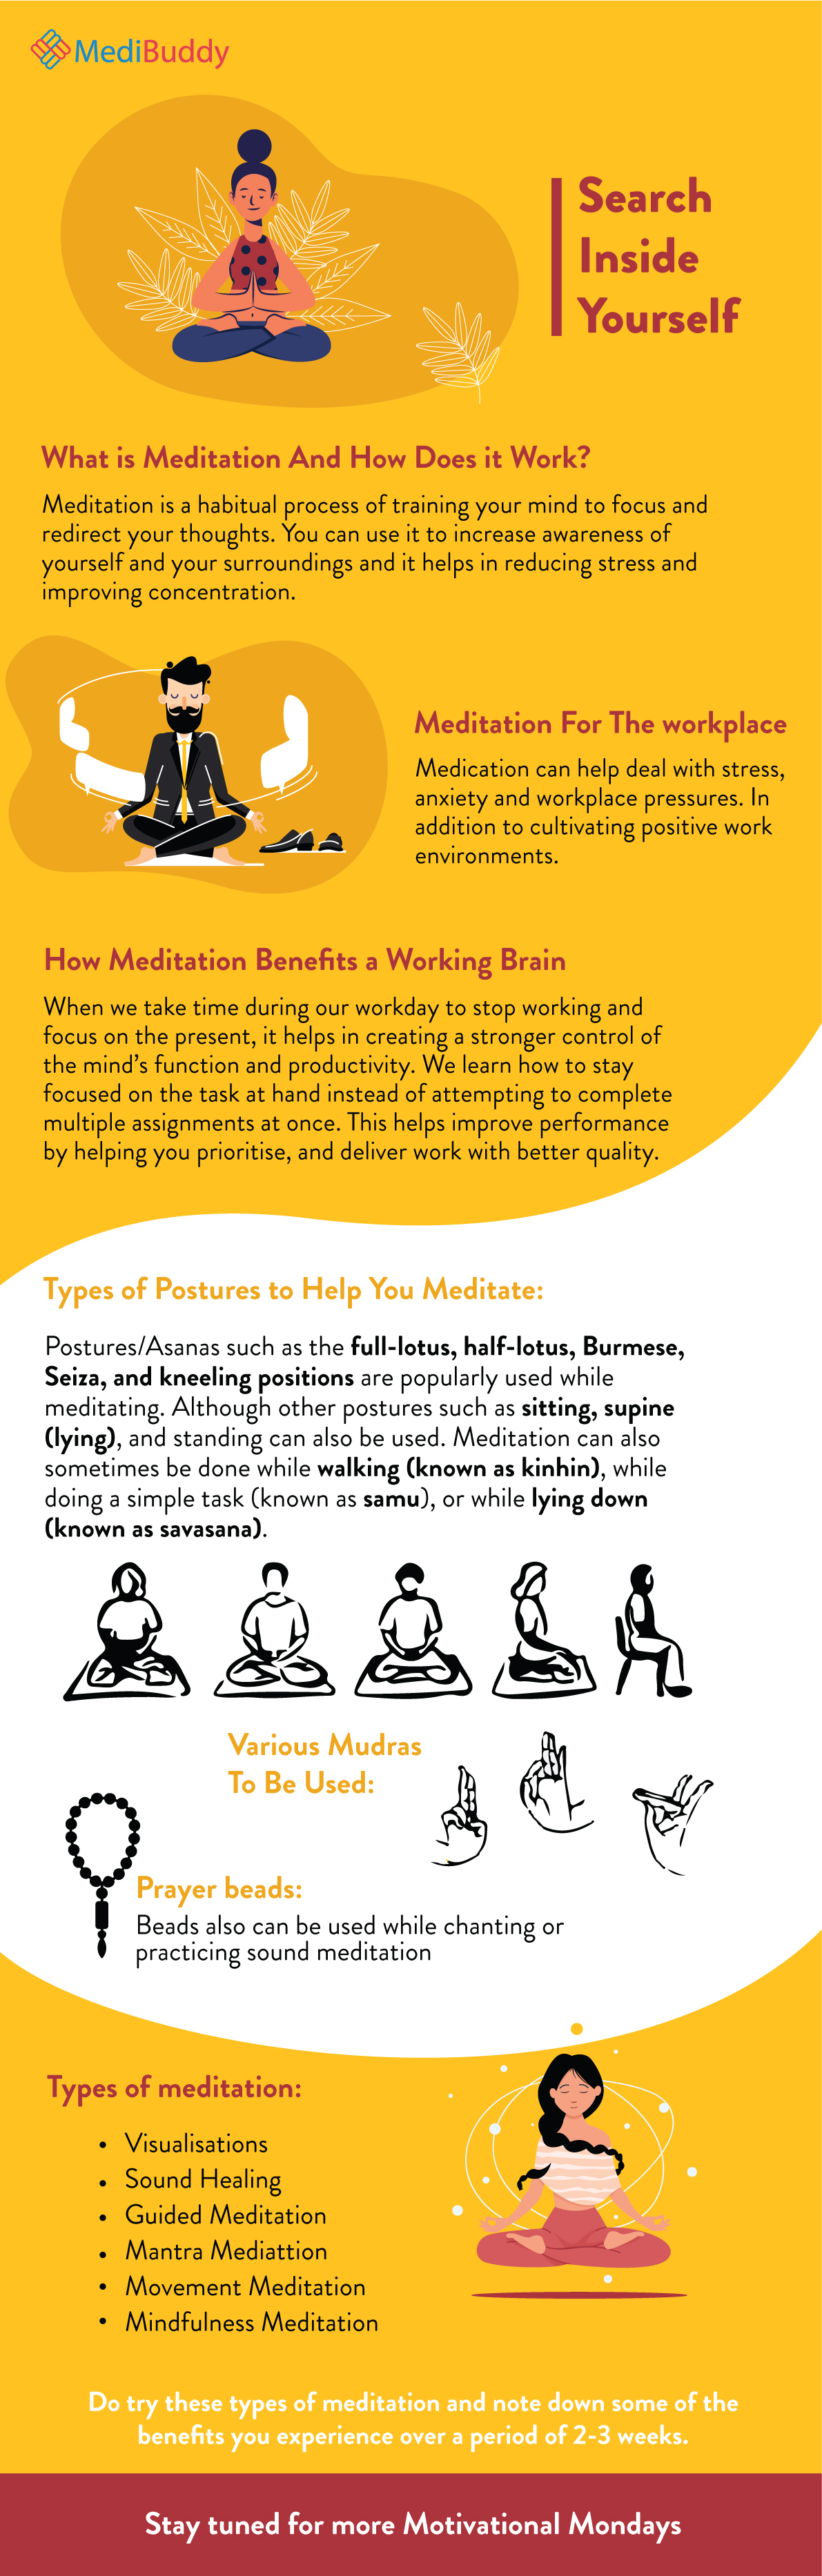 Meditation- Learn All About it!